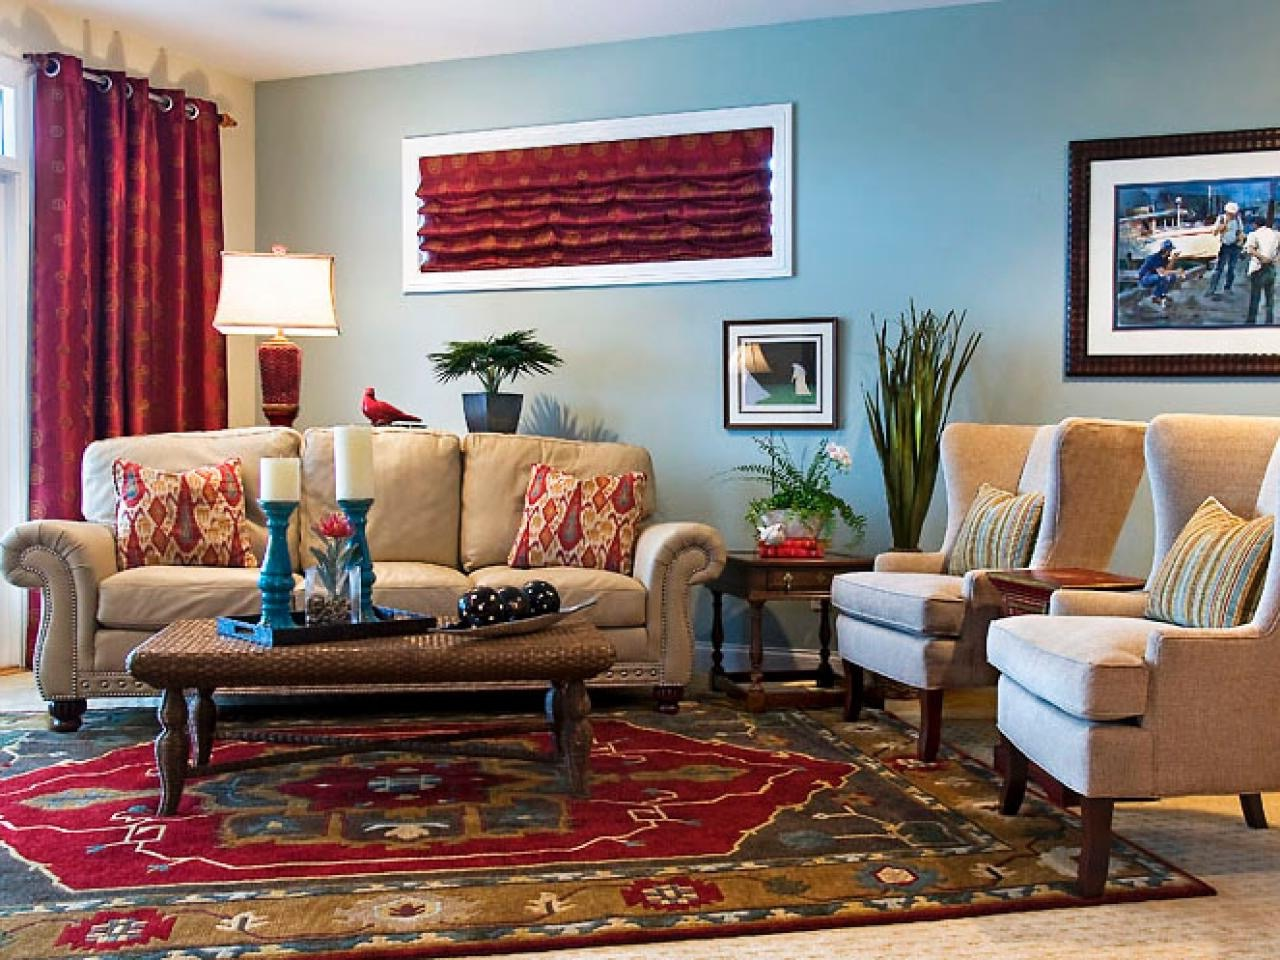 Middle Eastern Inspired Living Room With Elegant Sofa (Image 13 of 15)